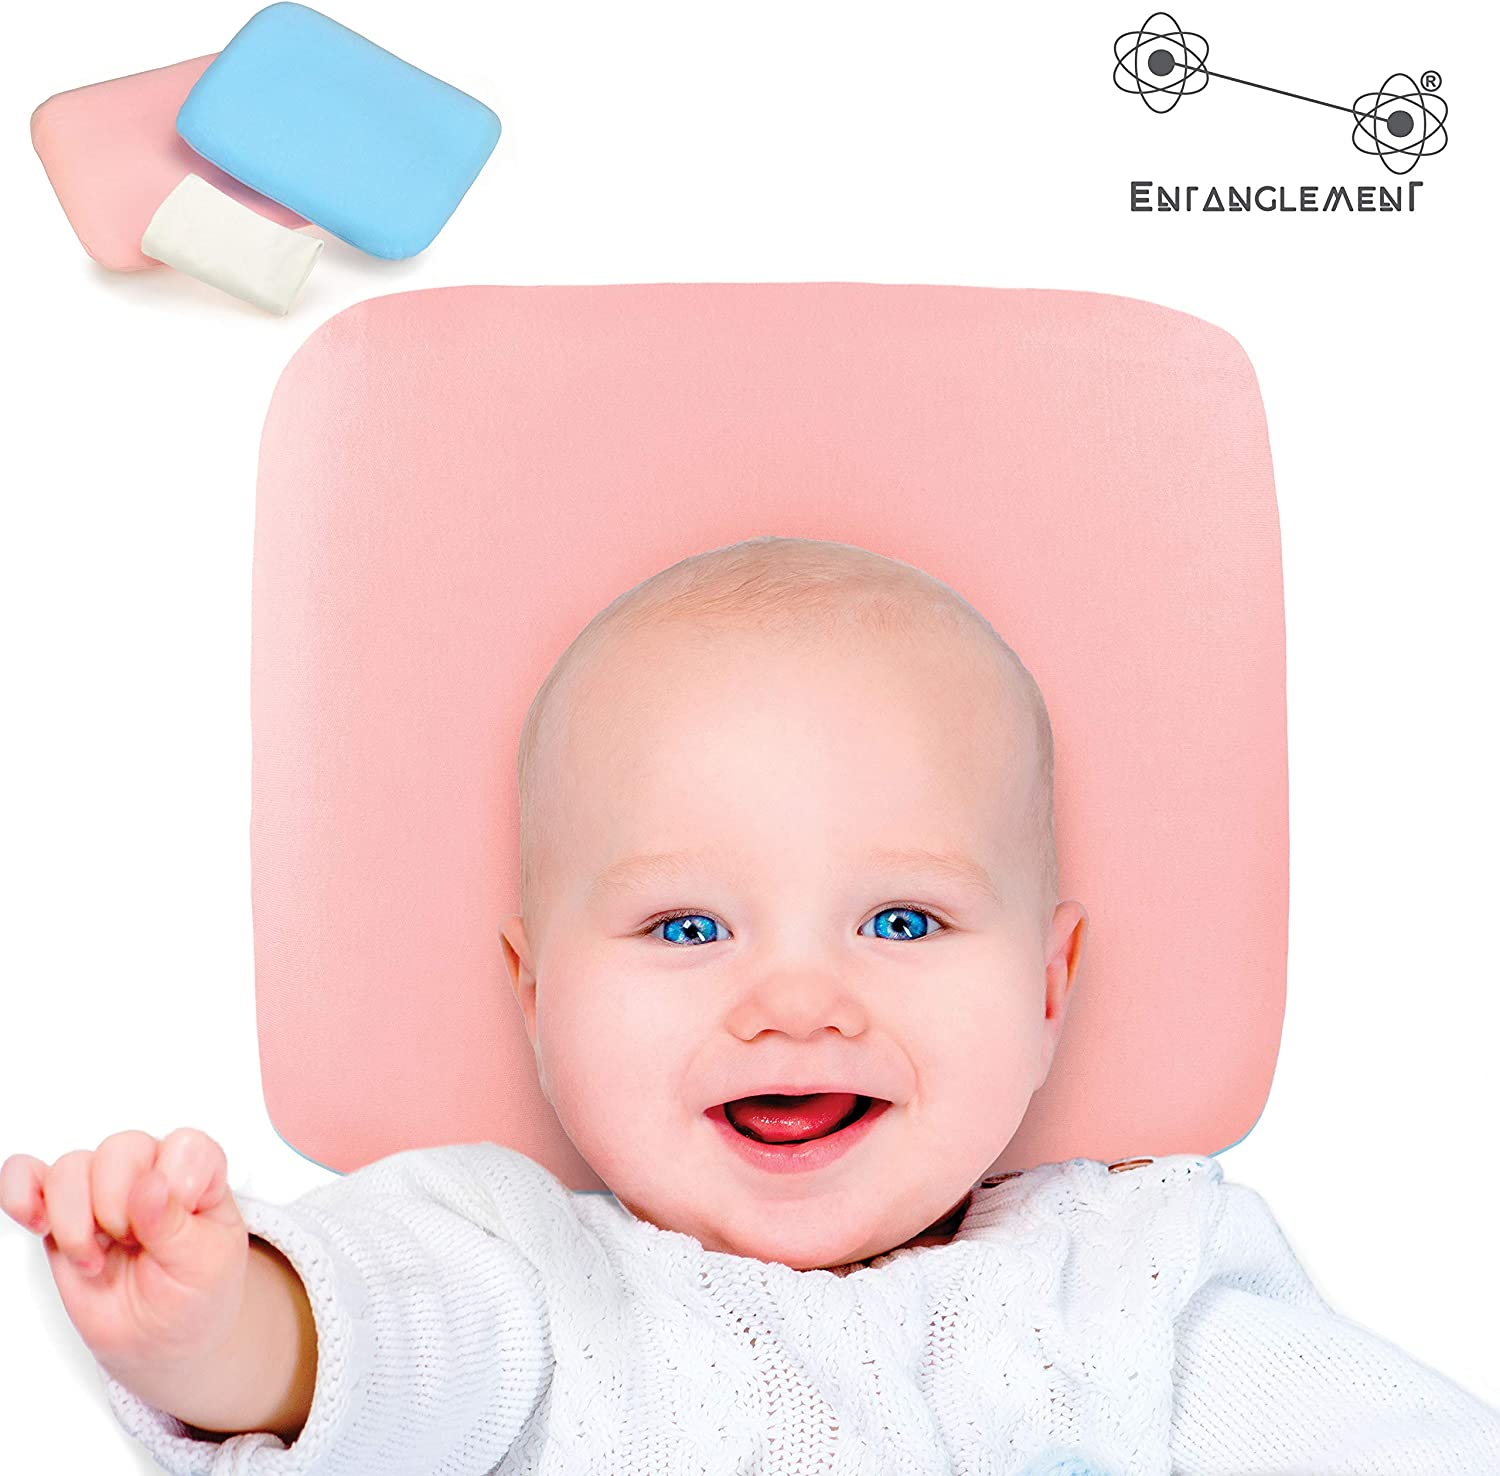 Entanglement/® 100/% natural latex antisuffocation plagiocephaly baby pillow prevents and treats flat-head syndrome detachable/&washable pillowcase in pink white pillowcase included free 100/% cotton